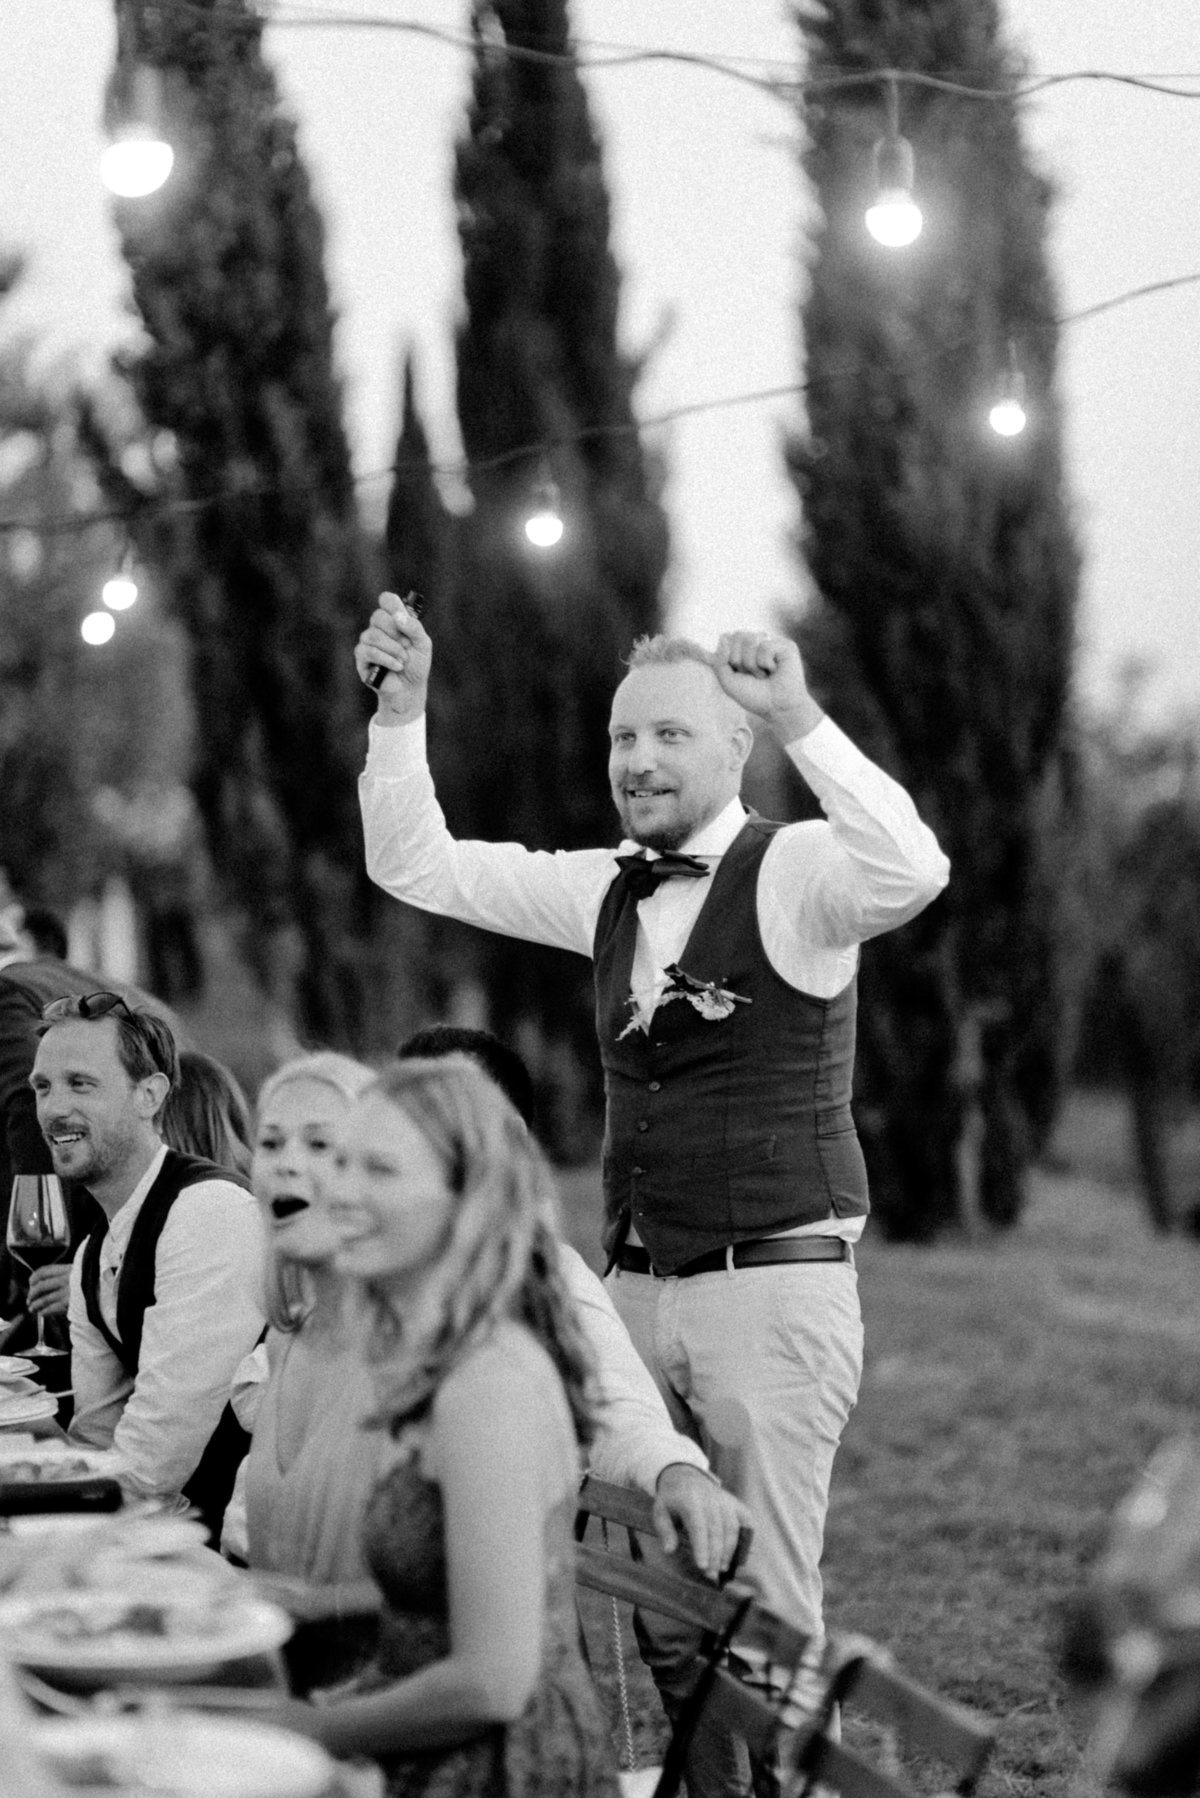 Tuscany_Wedding_Photographer_Fine_Art_Photography (135 von 146)